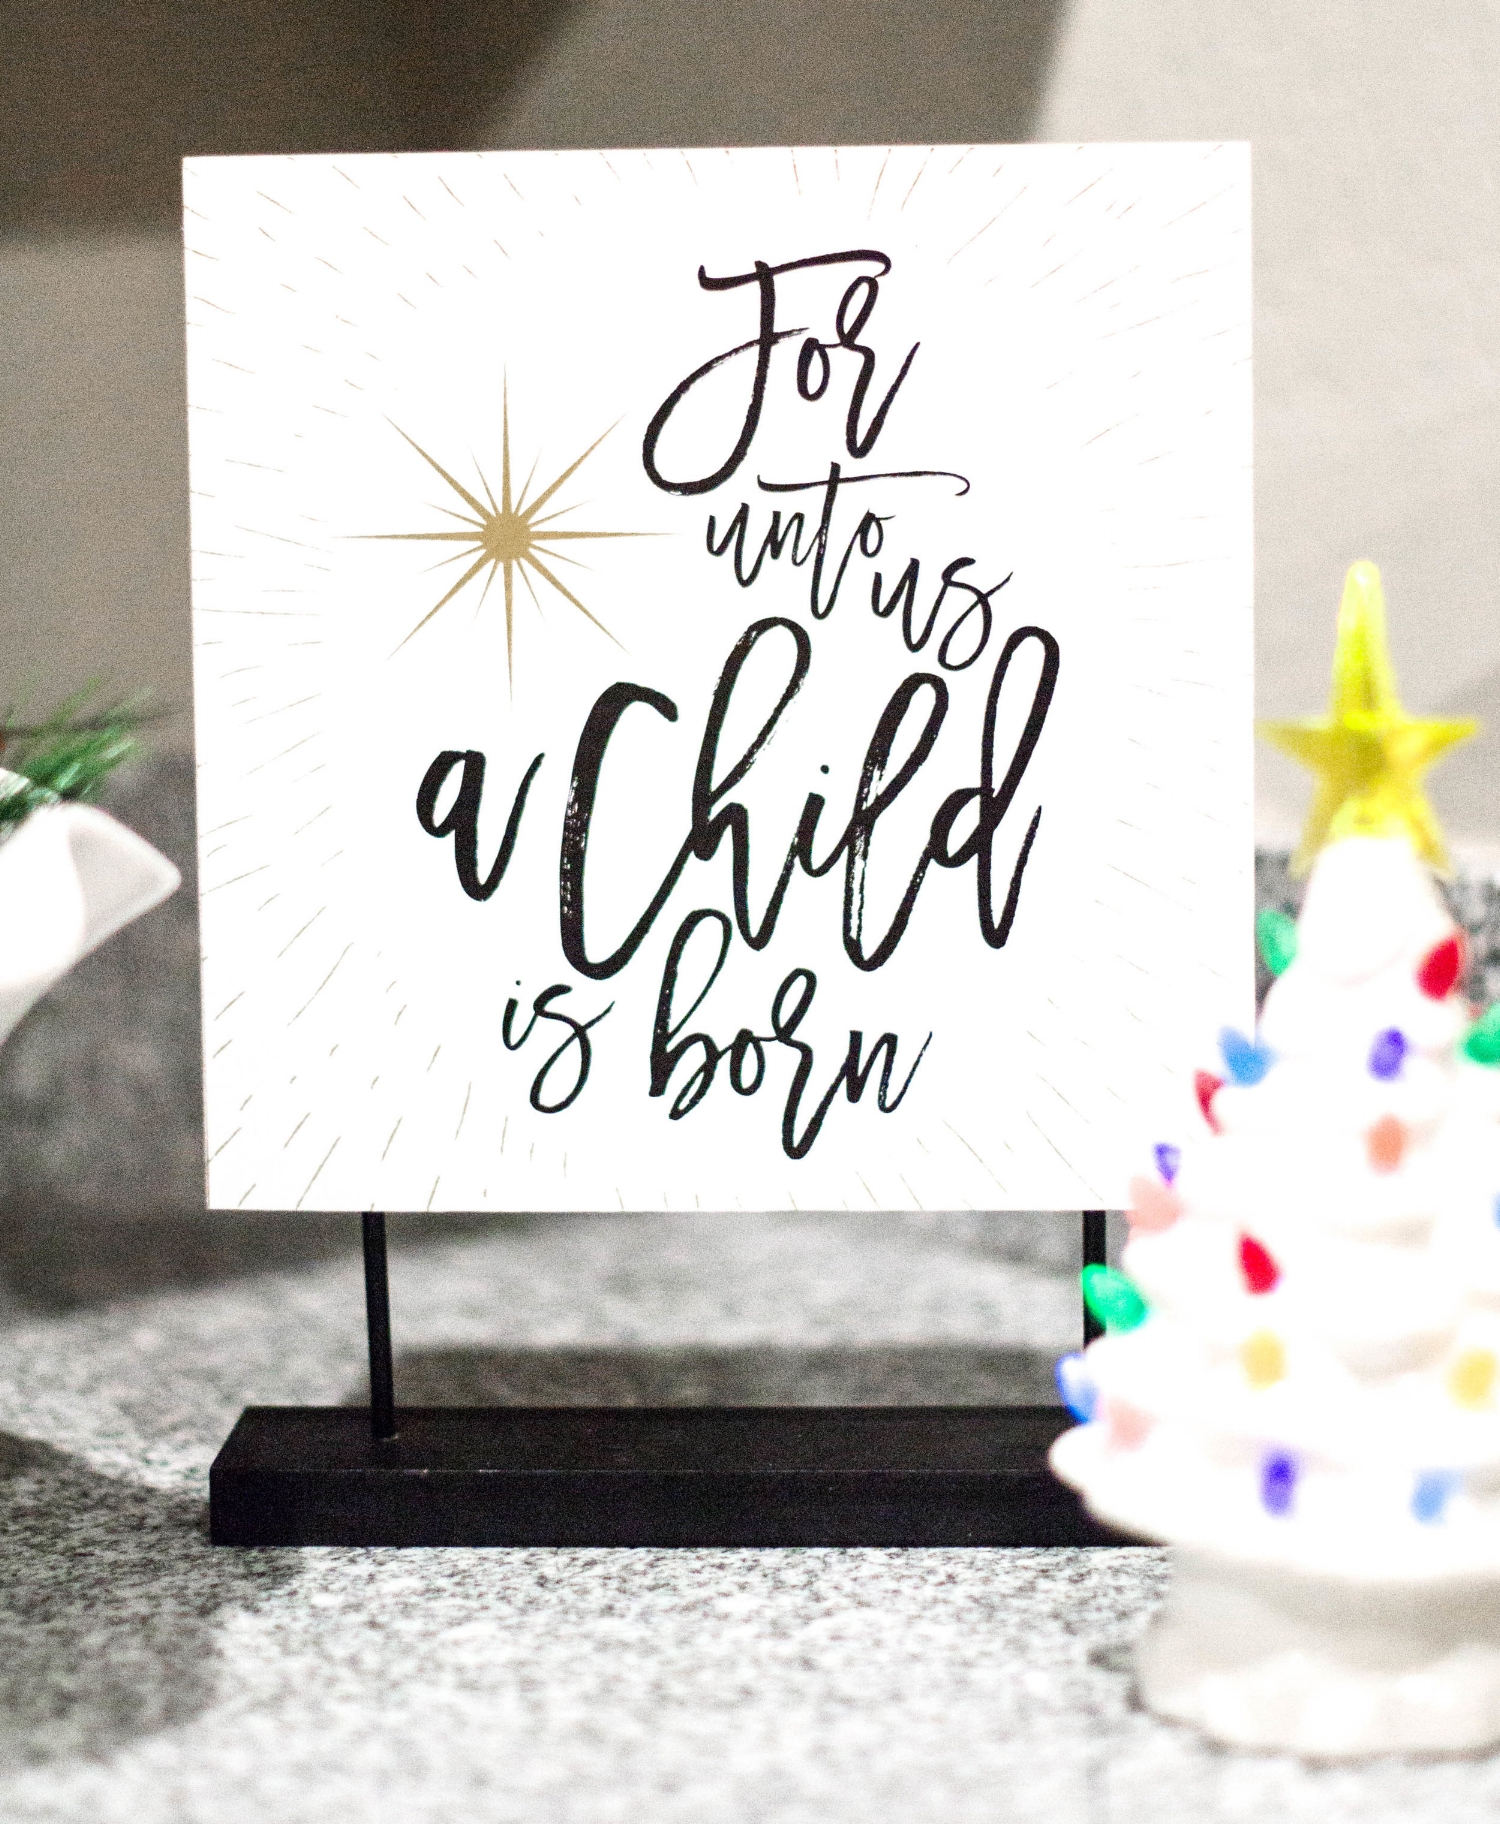 for_unto_us_a_child_is_born.jpg